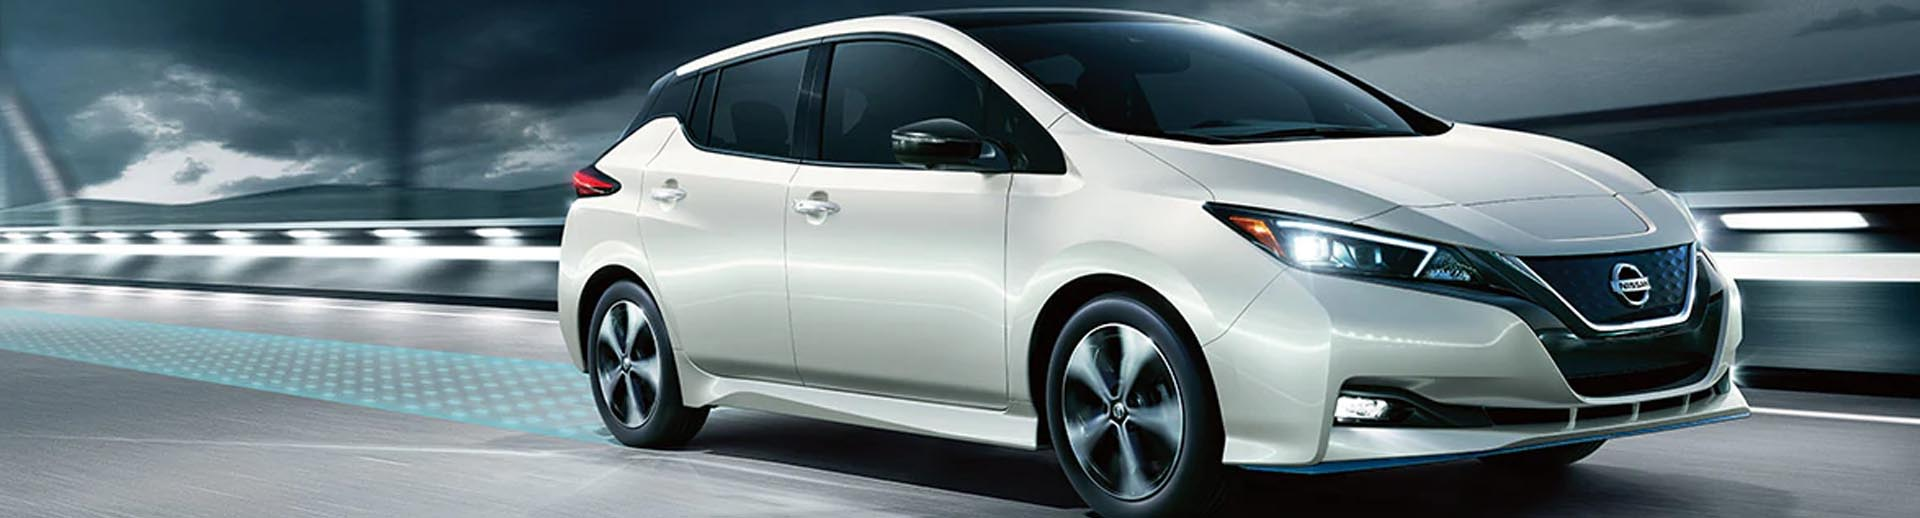 2020 Nissan LEAF Lifestyle Photo